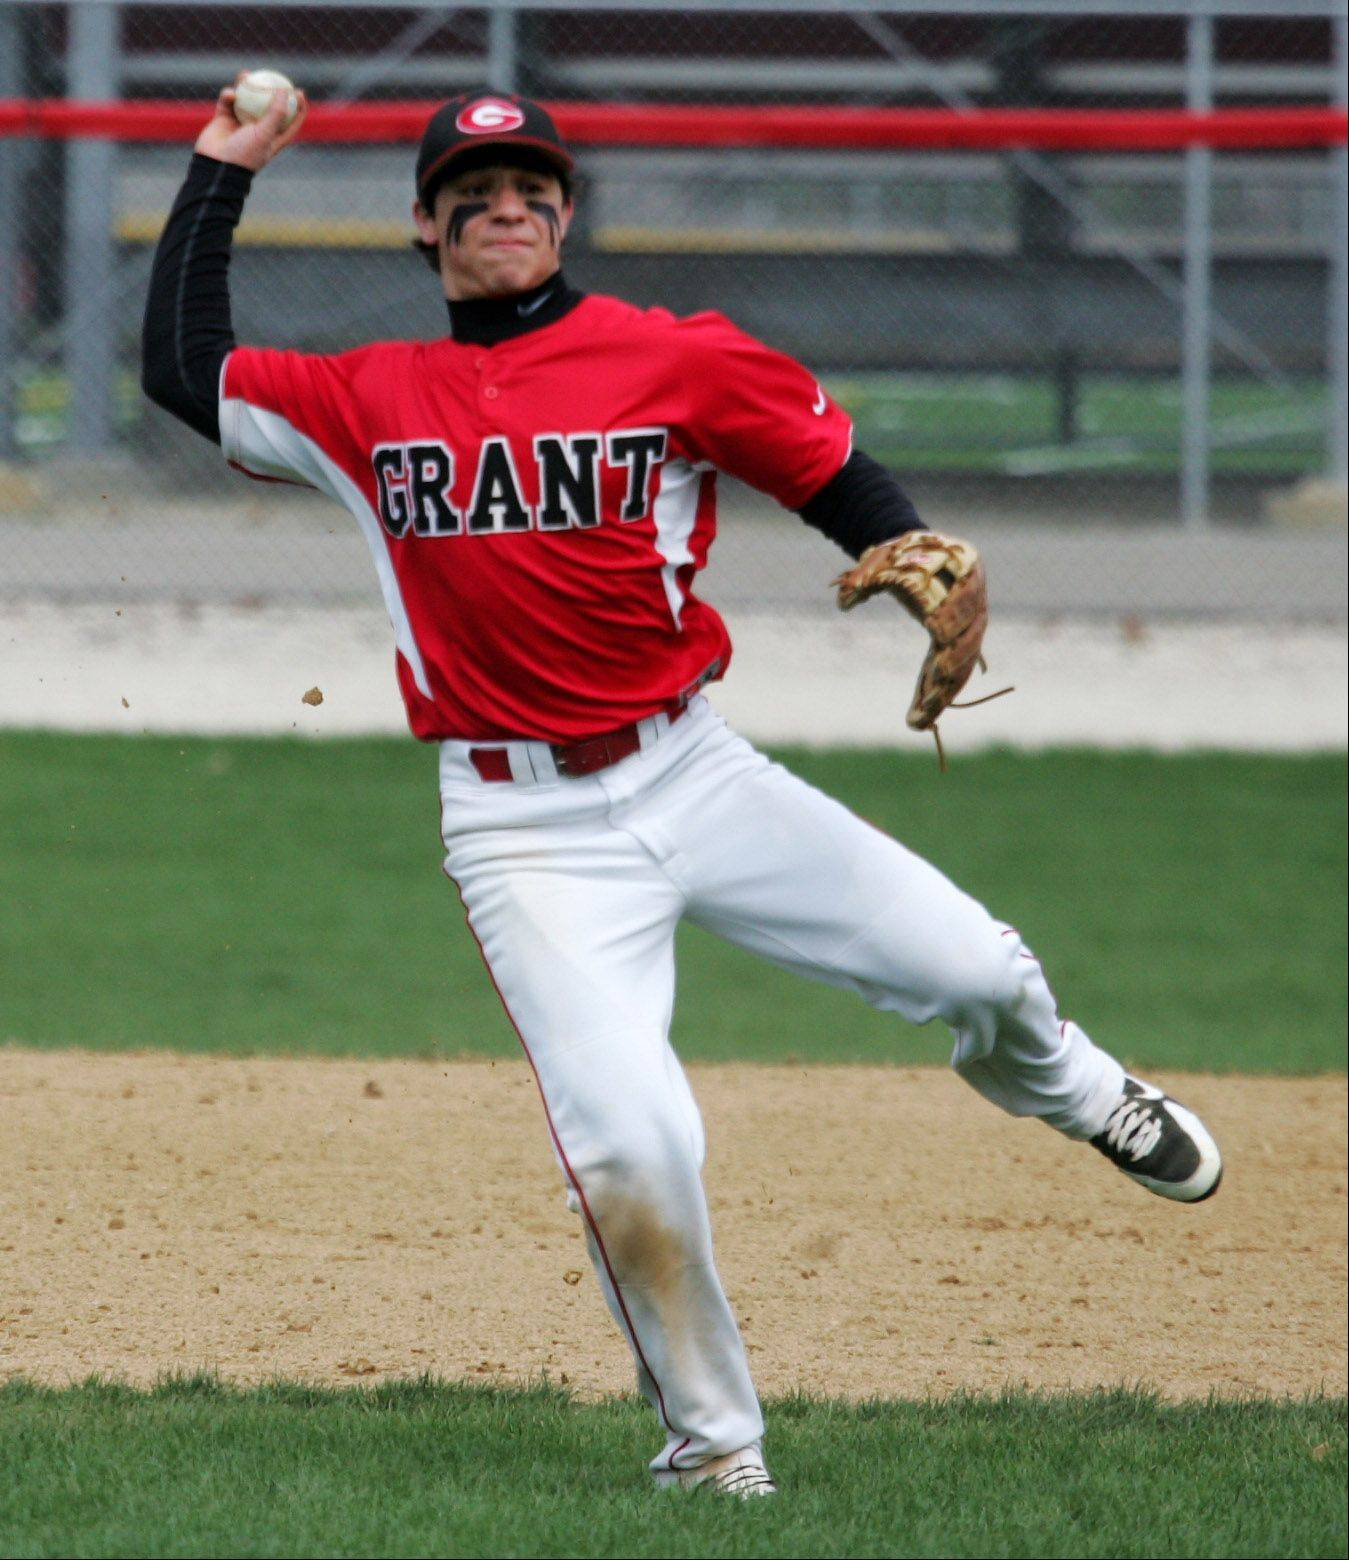 Grant shortstop Jordan Villarreal makes a throw to first base for an out against visiting West Chicago on Tuesday.